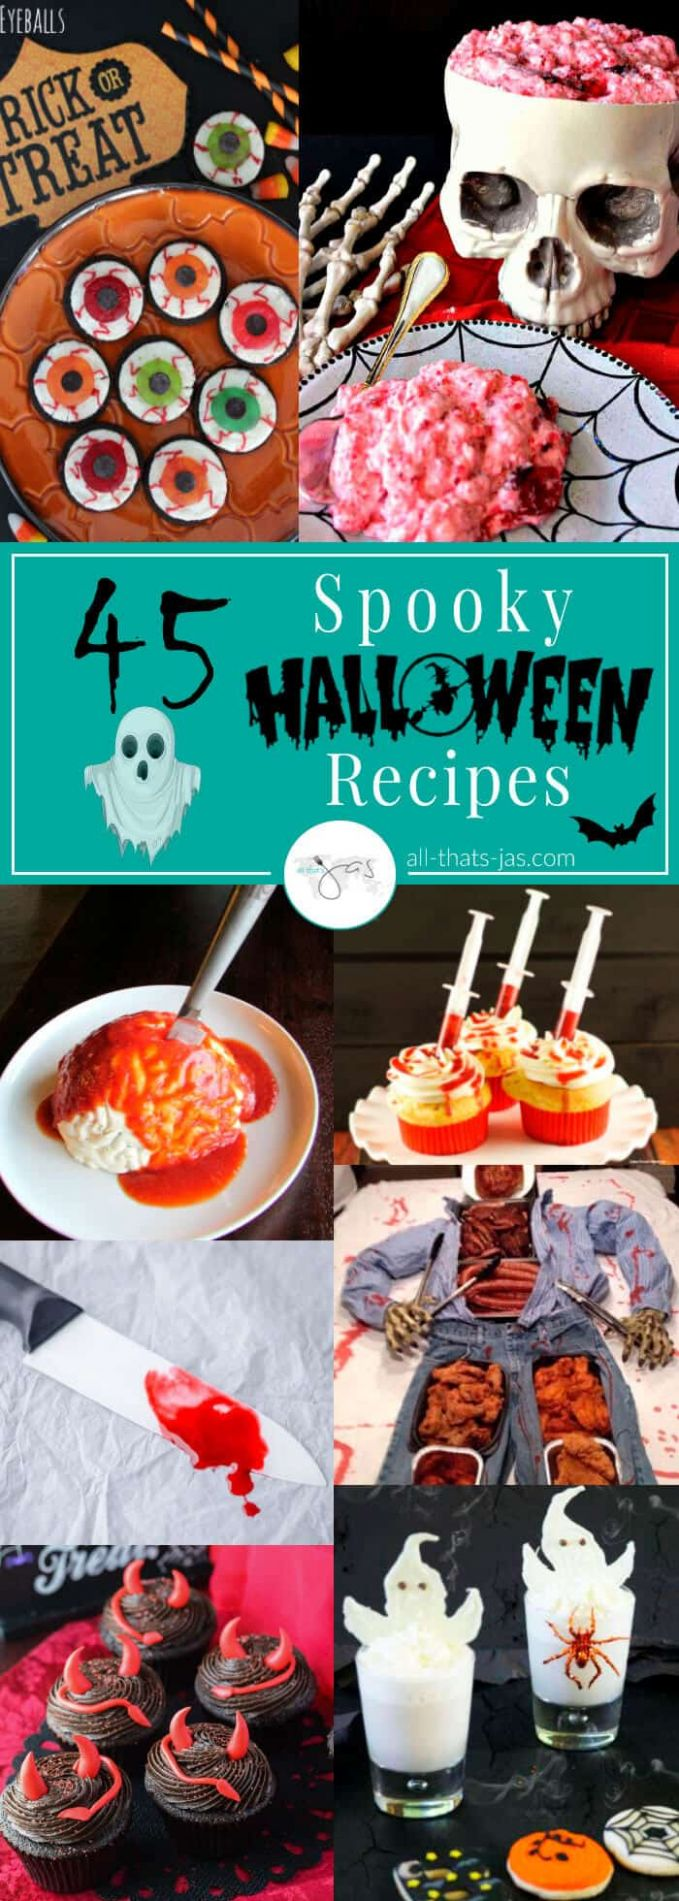 11 Spooky Halloween Recipes & Party Ideas | All That's Jas